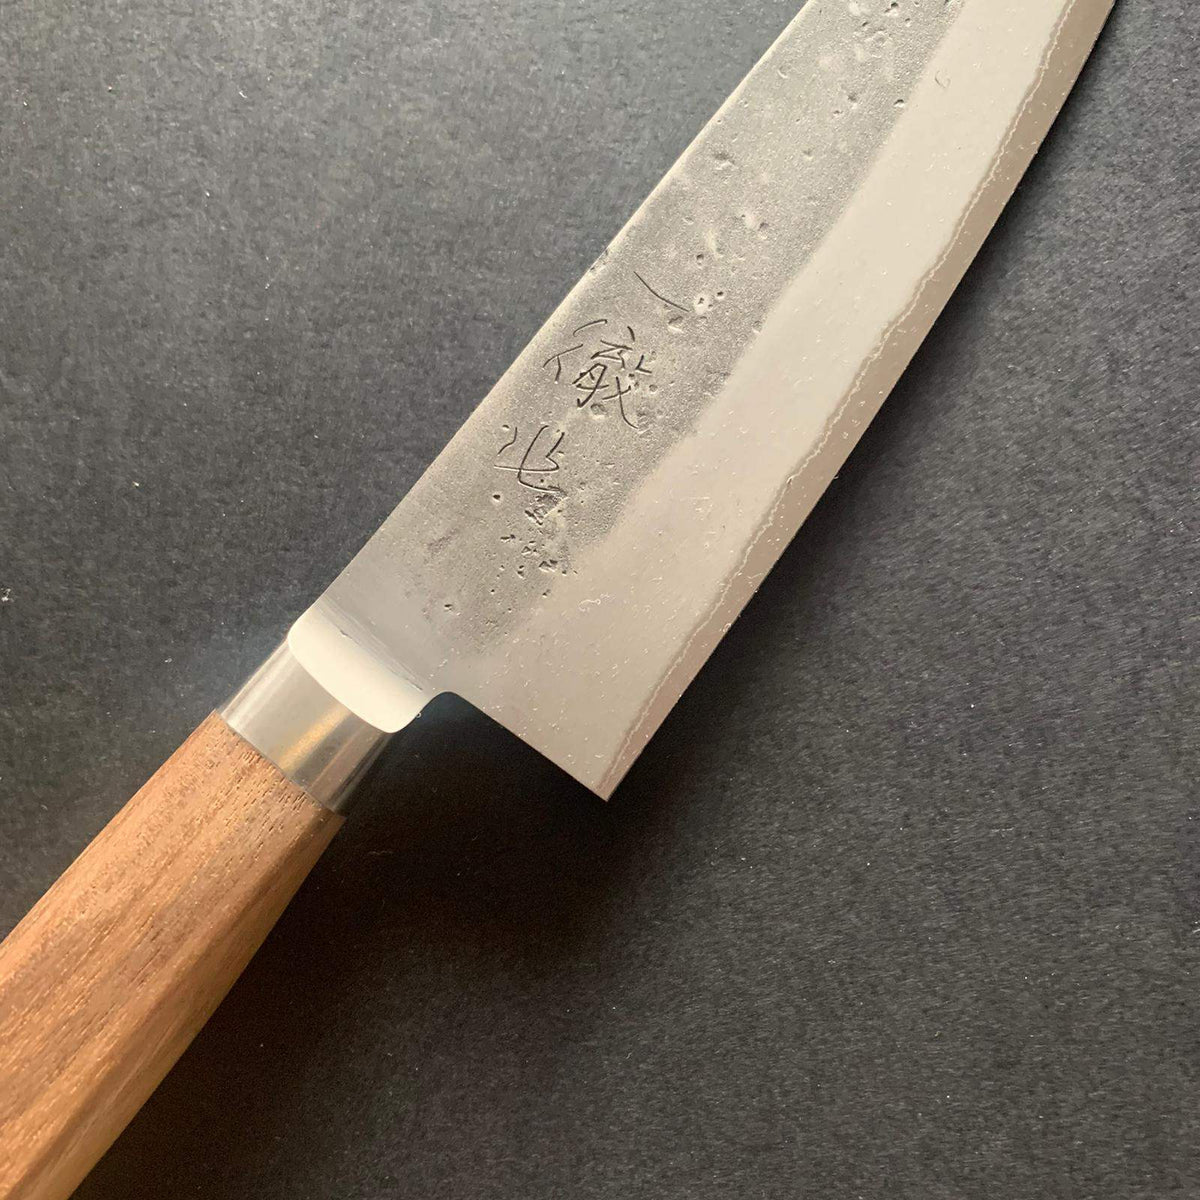 Bunka knife, Aogami 2 core with stainless steel cladding, nashiji finish - Tadafusa